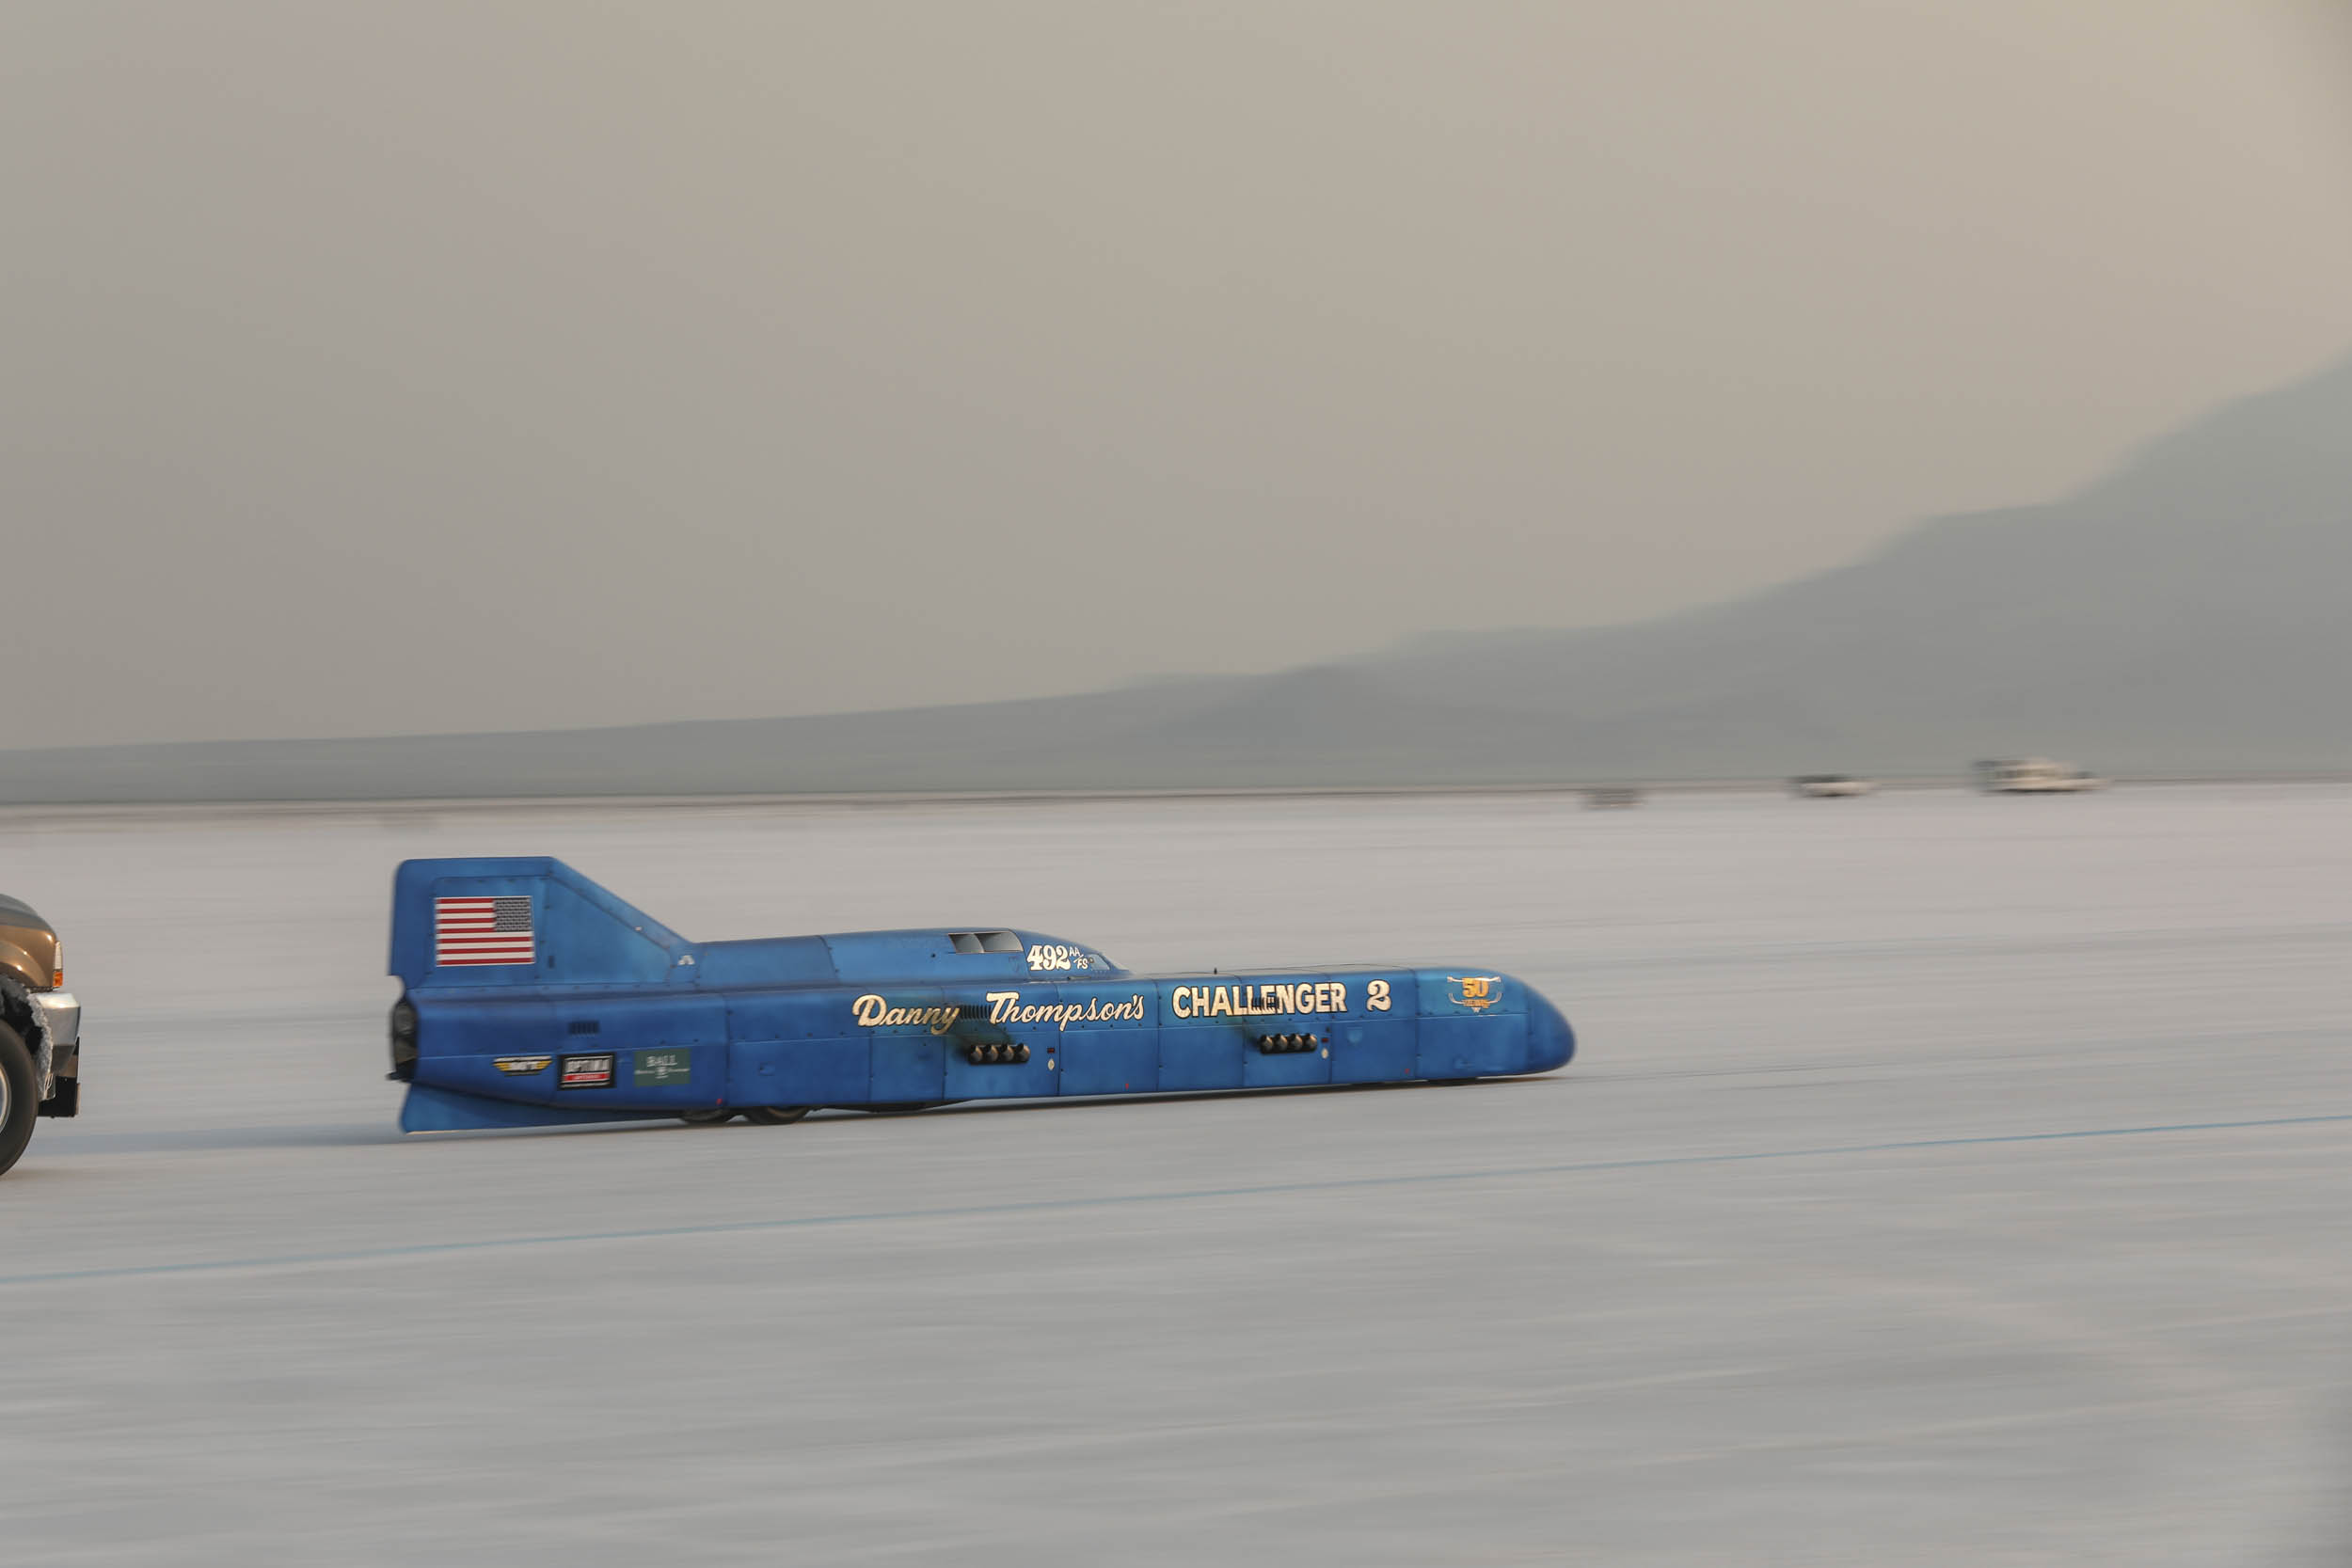 Danny Thompson increased his previous record, set in 2016, to claim the Speed Week mark for AA Fuel Streamliners at 448.757 mph, the fastest for a piston-powered car at Speed Week.